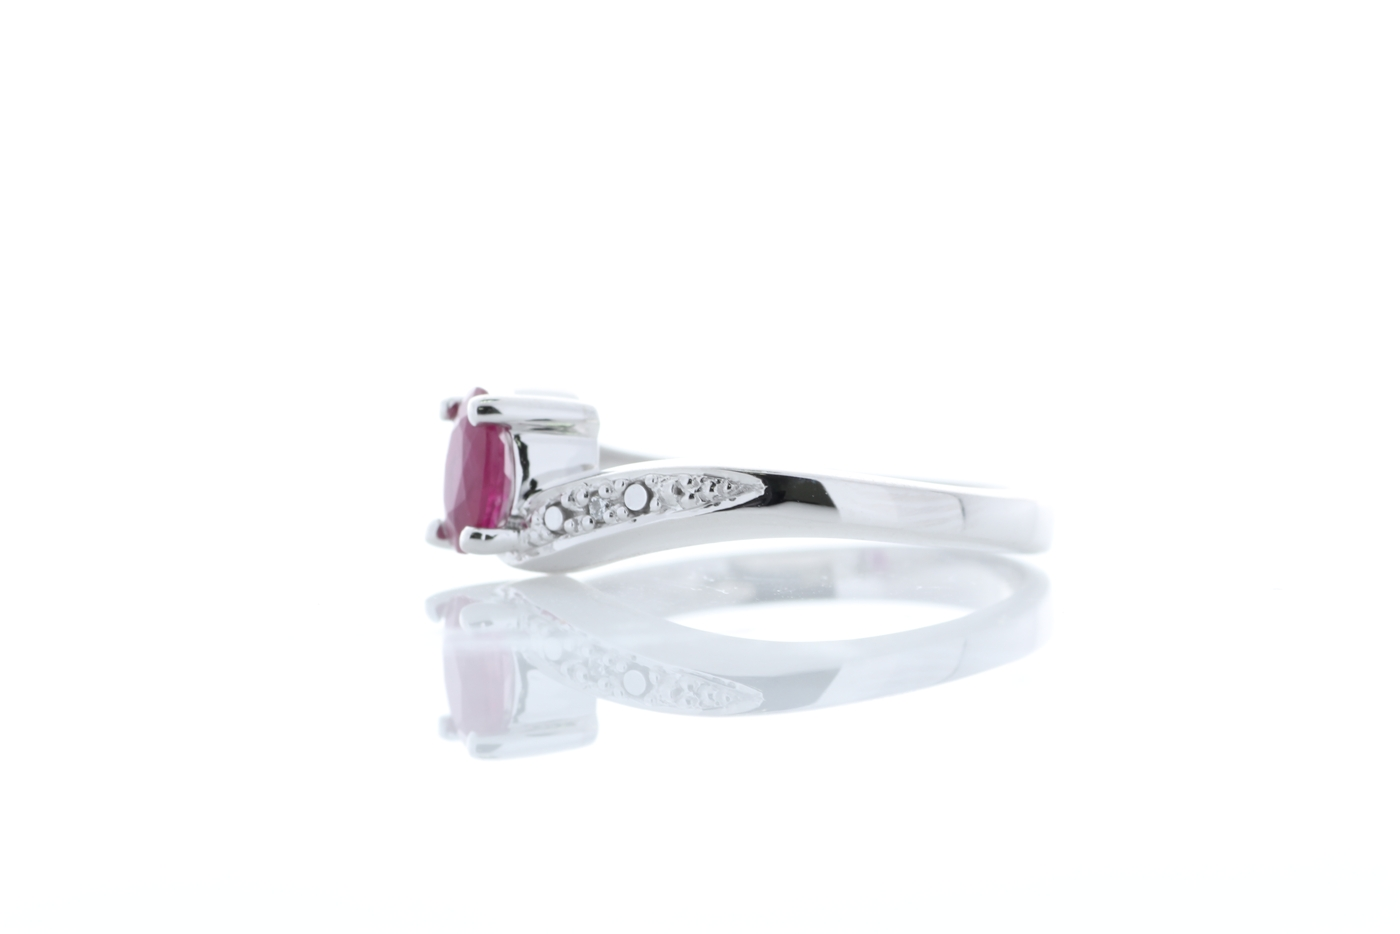 Lot 56 - 9ct White Gold Diamond And Ruby Ring 0.01 Carats